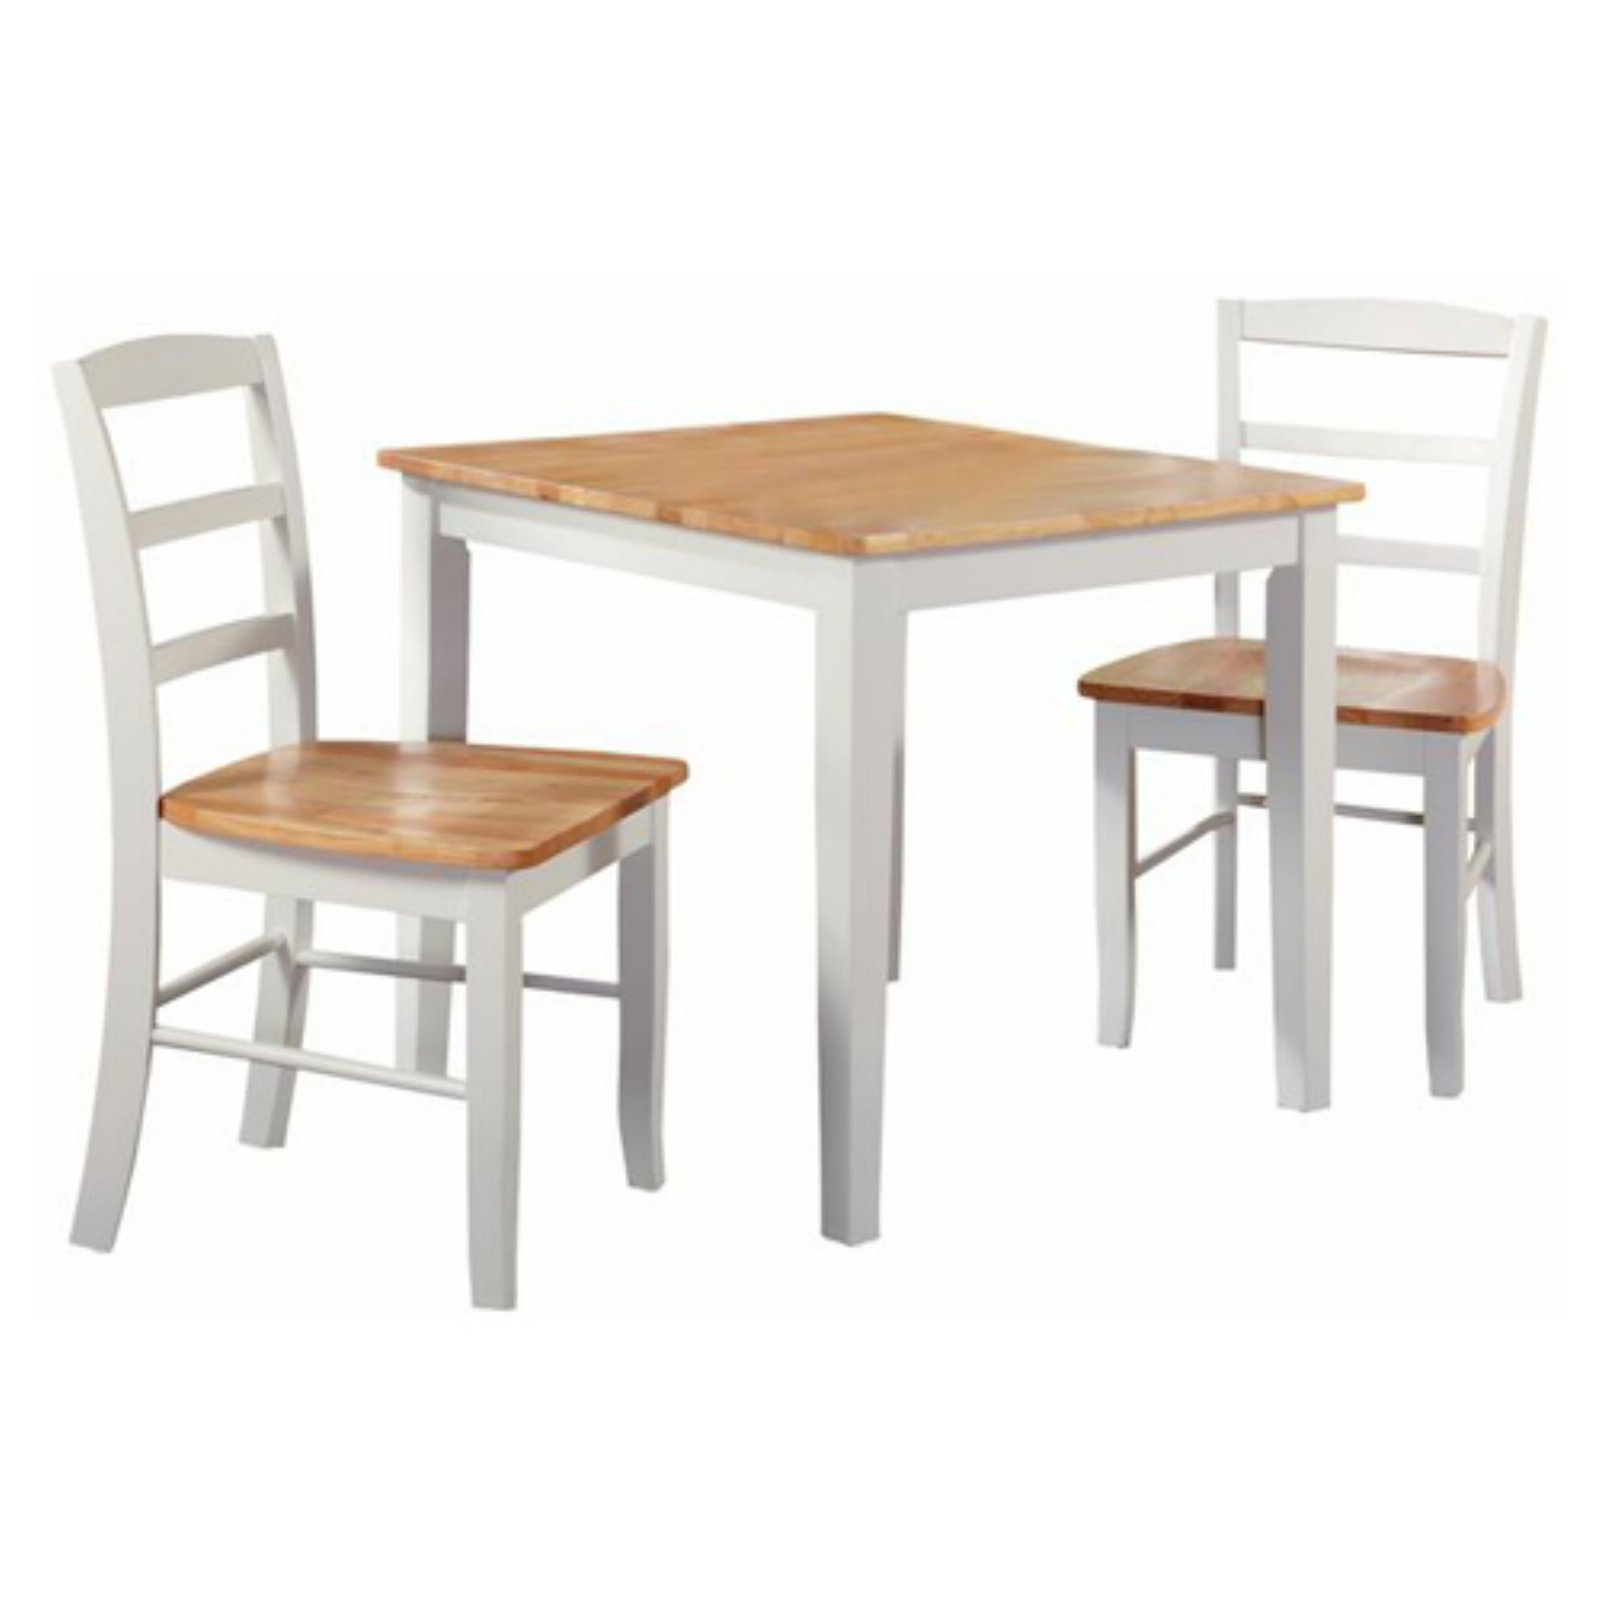 "30"" x 30"" Dining Table with 2 Ladderback Chairs"